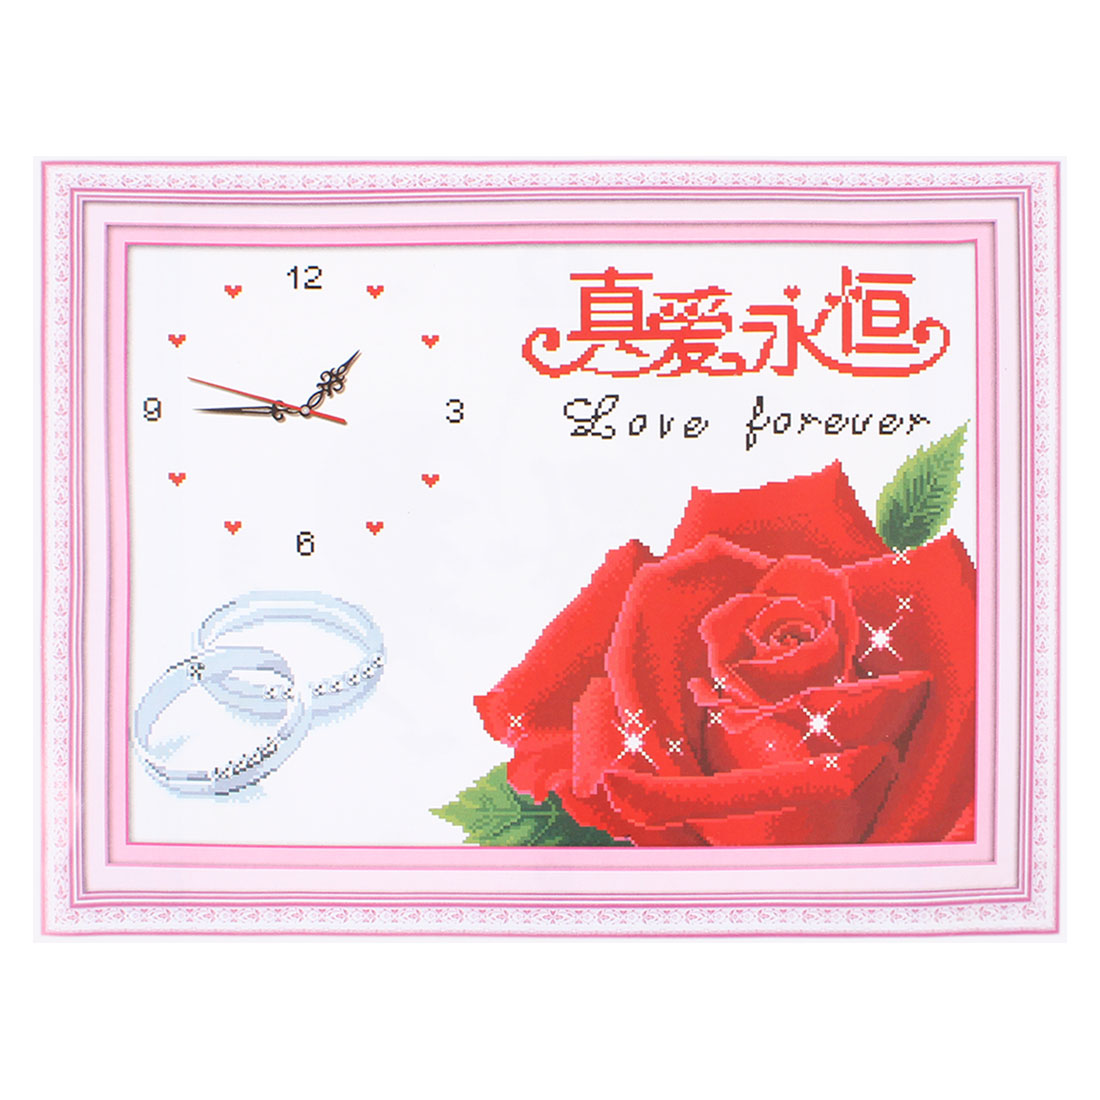 Rose Ring Digital Clock Printed Stamped Cross Stitch Counted Kit for Ladies Women